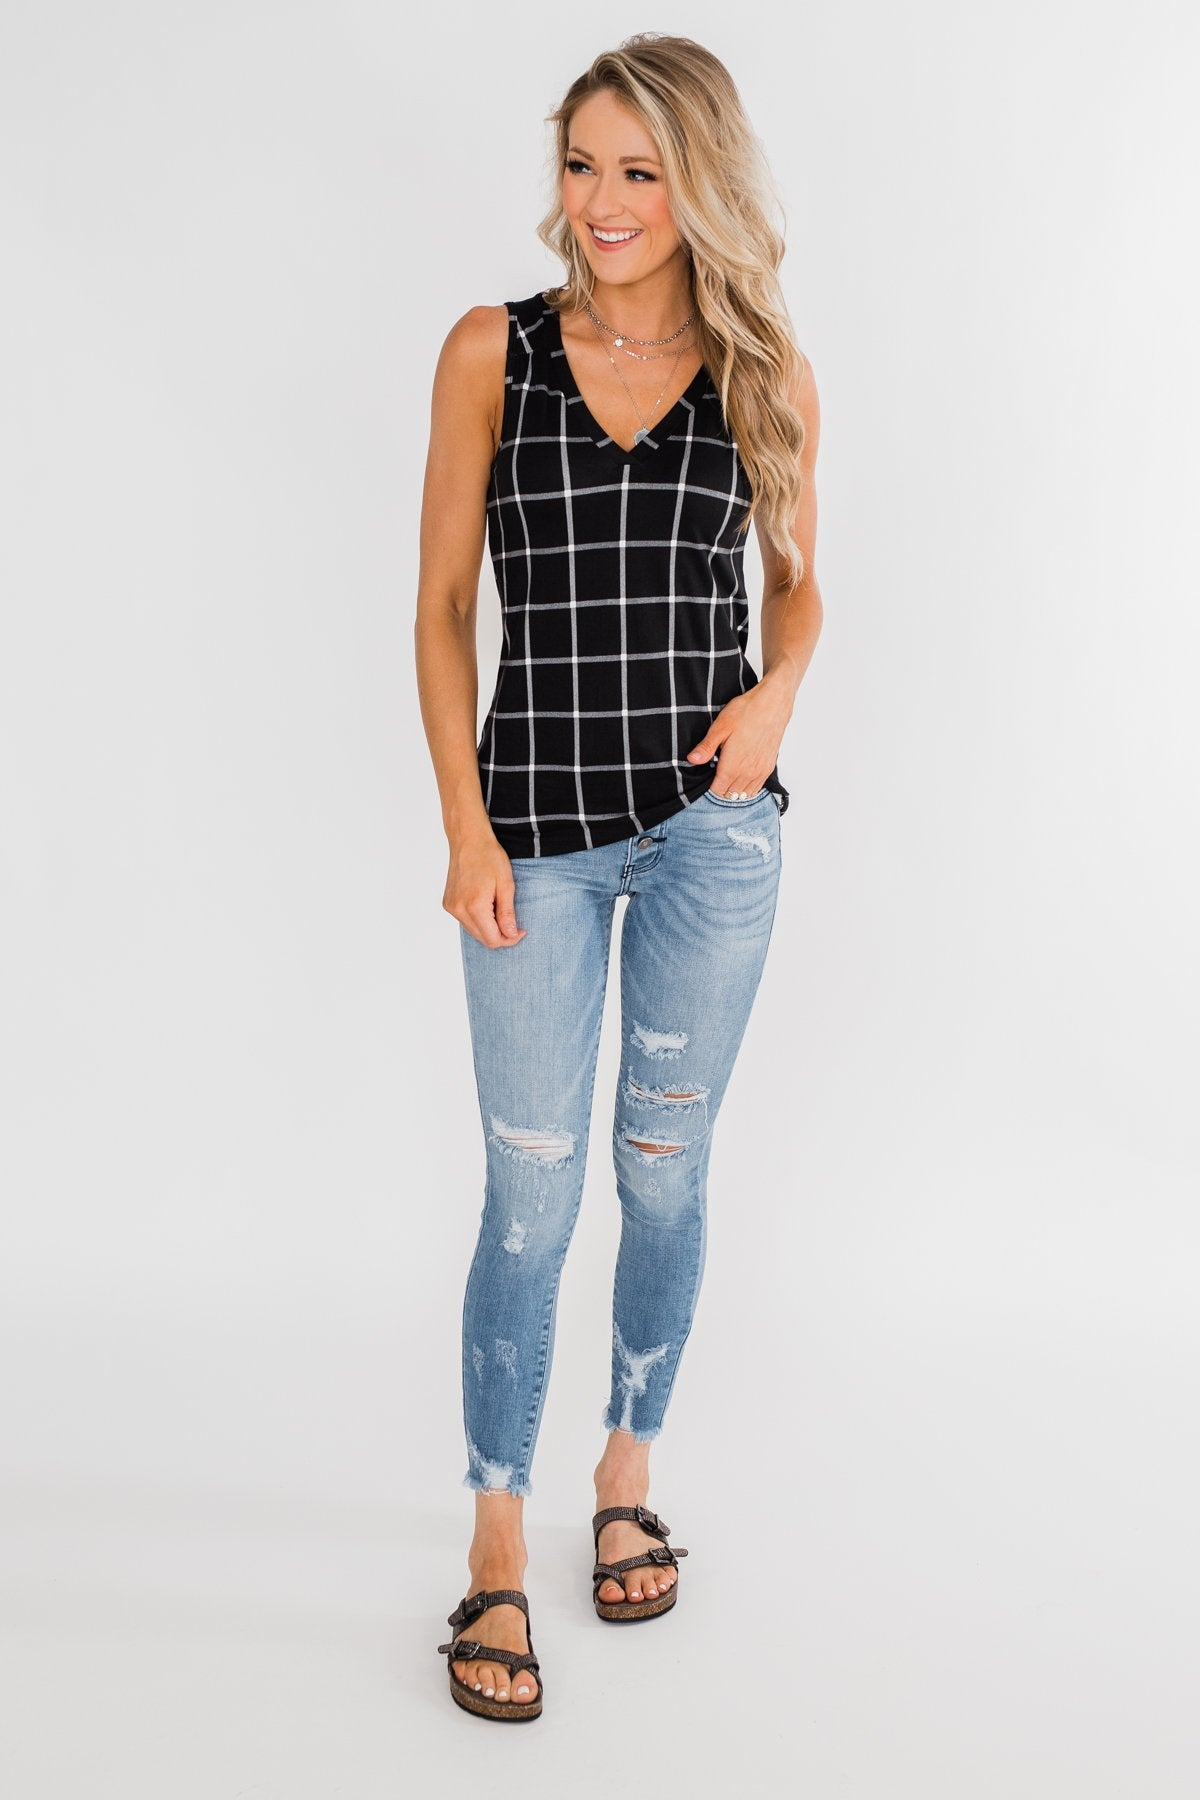 Step to the Beat Graph Striped Tank Top- Black